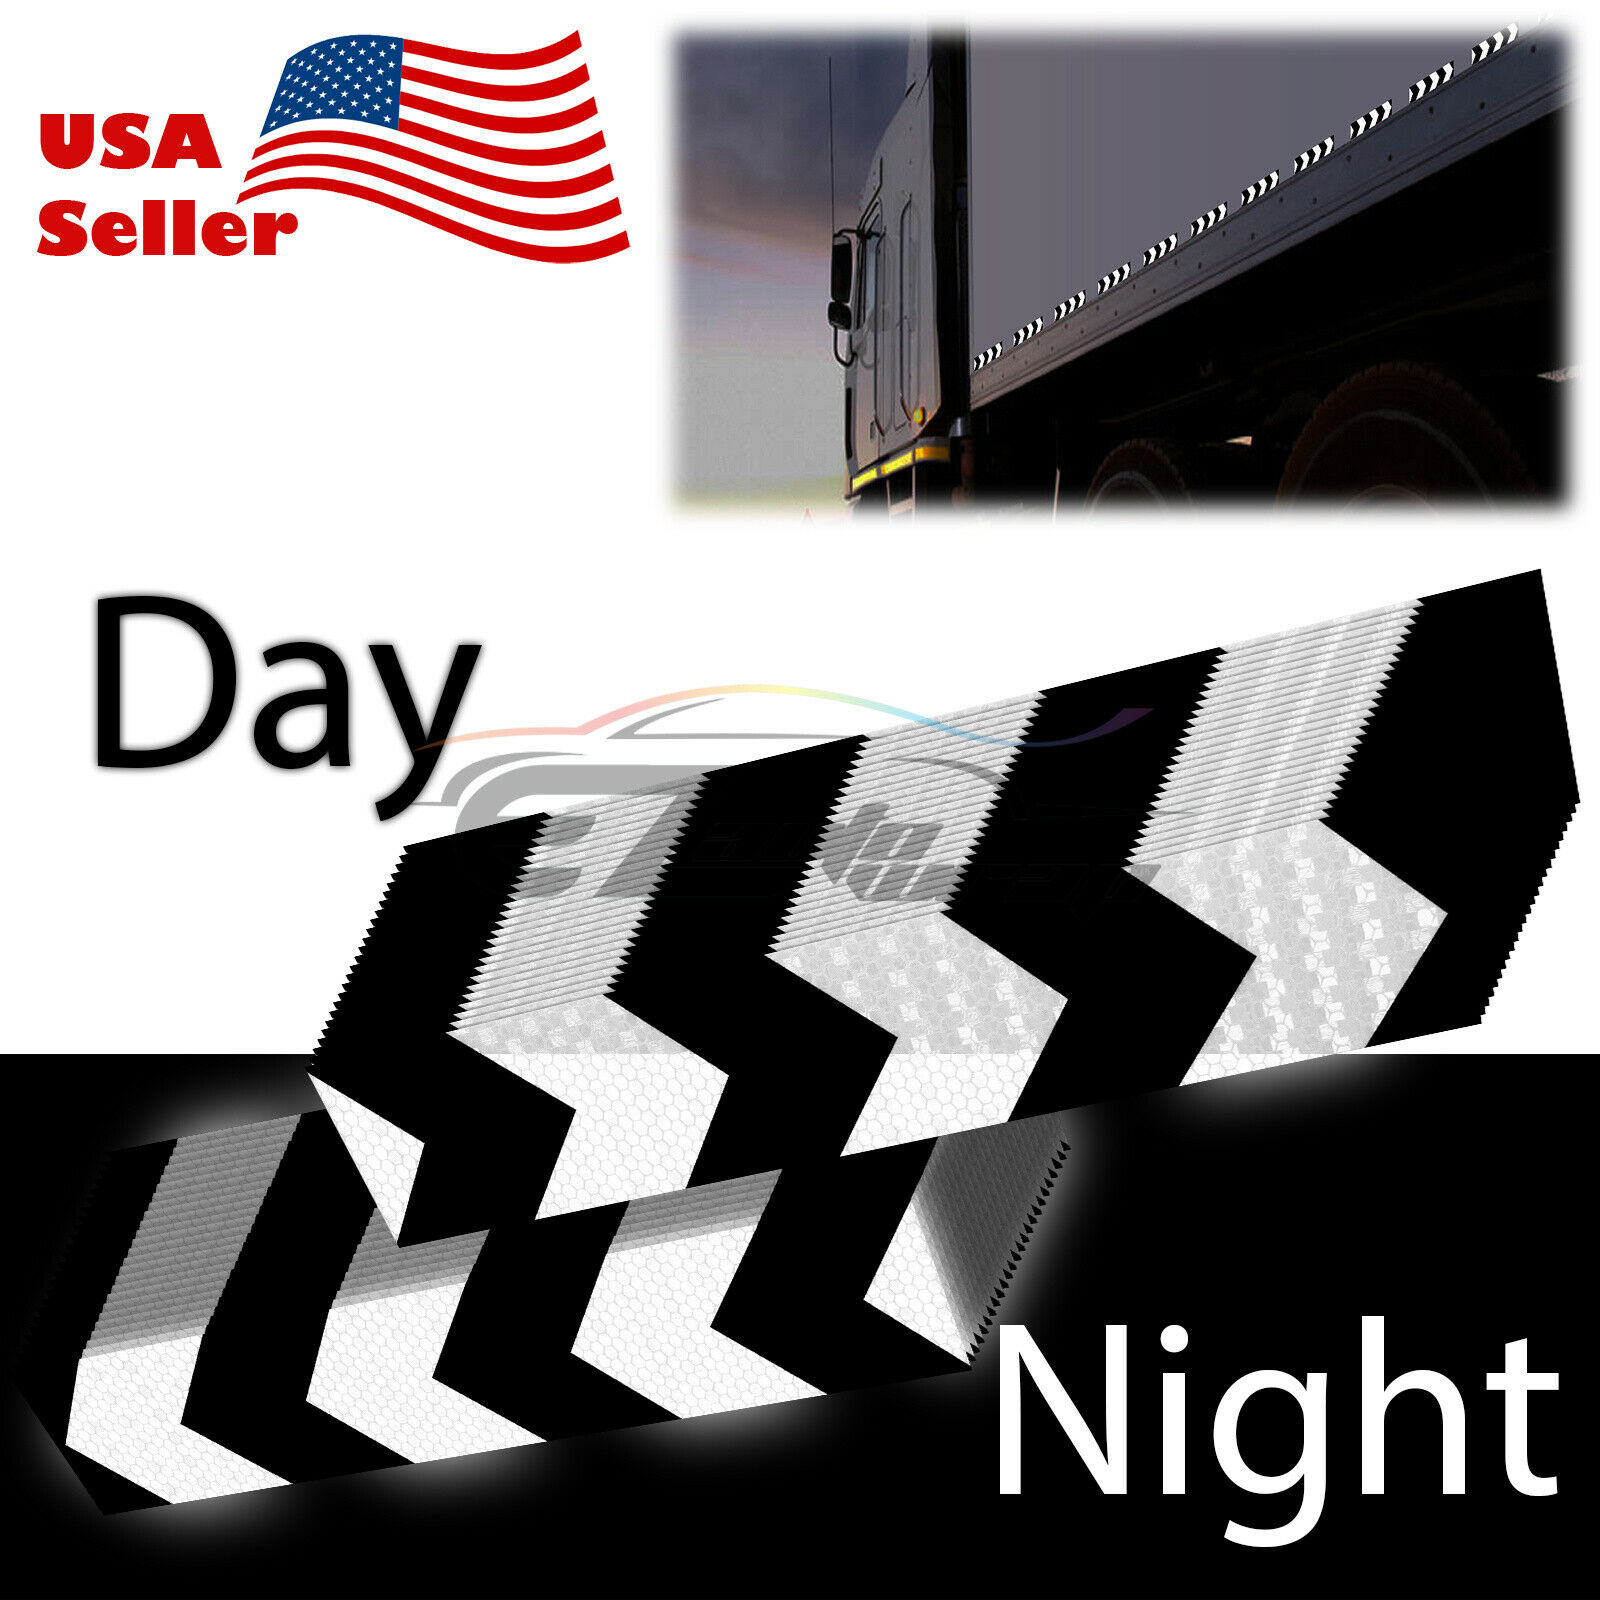 DOT-C2 Conspicuity Arrow Reflective Tape Strip 1 Foot Safety Warning Trailer RV